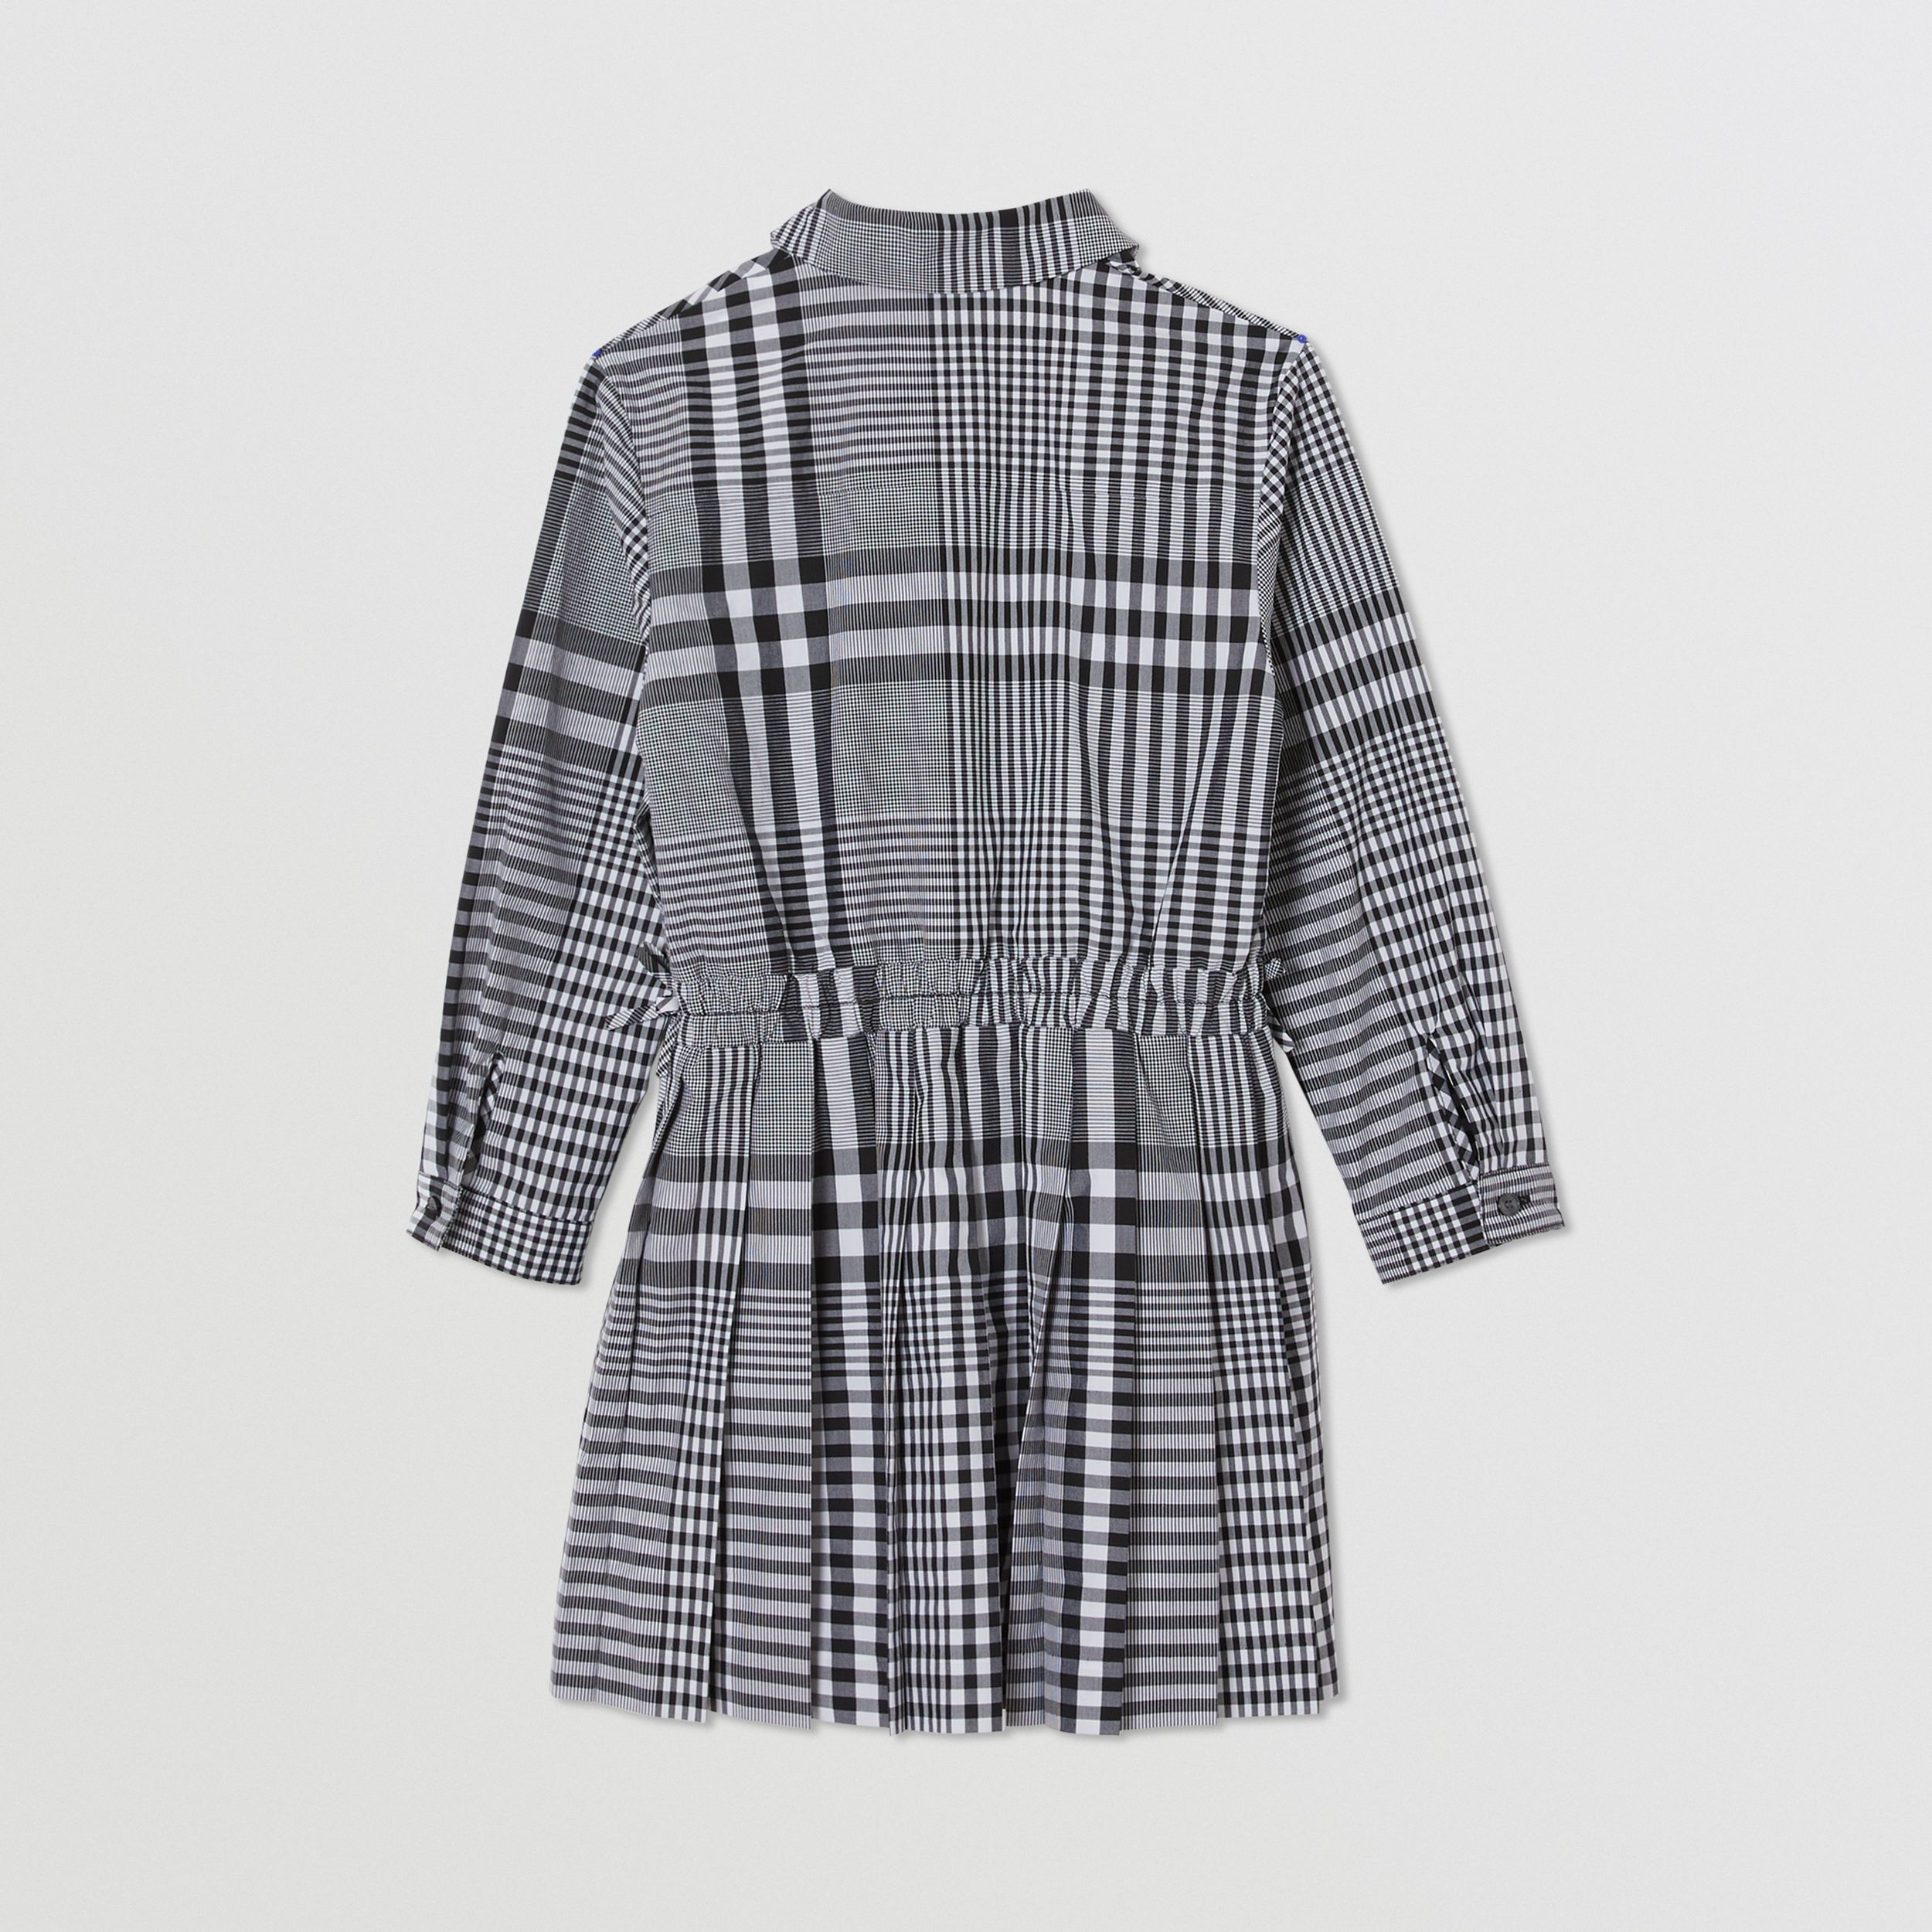 Long-sleeve Monogram Motif Check Cotton Dress in Black | Burberry - 4